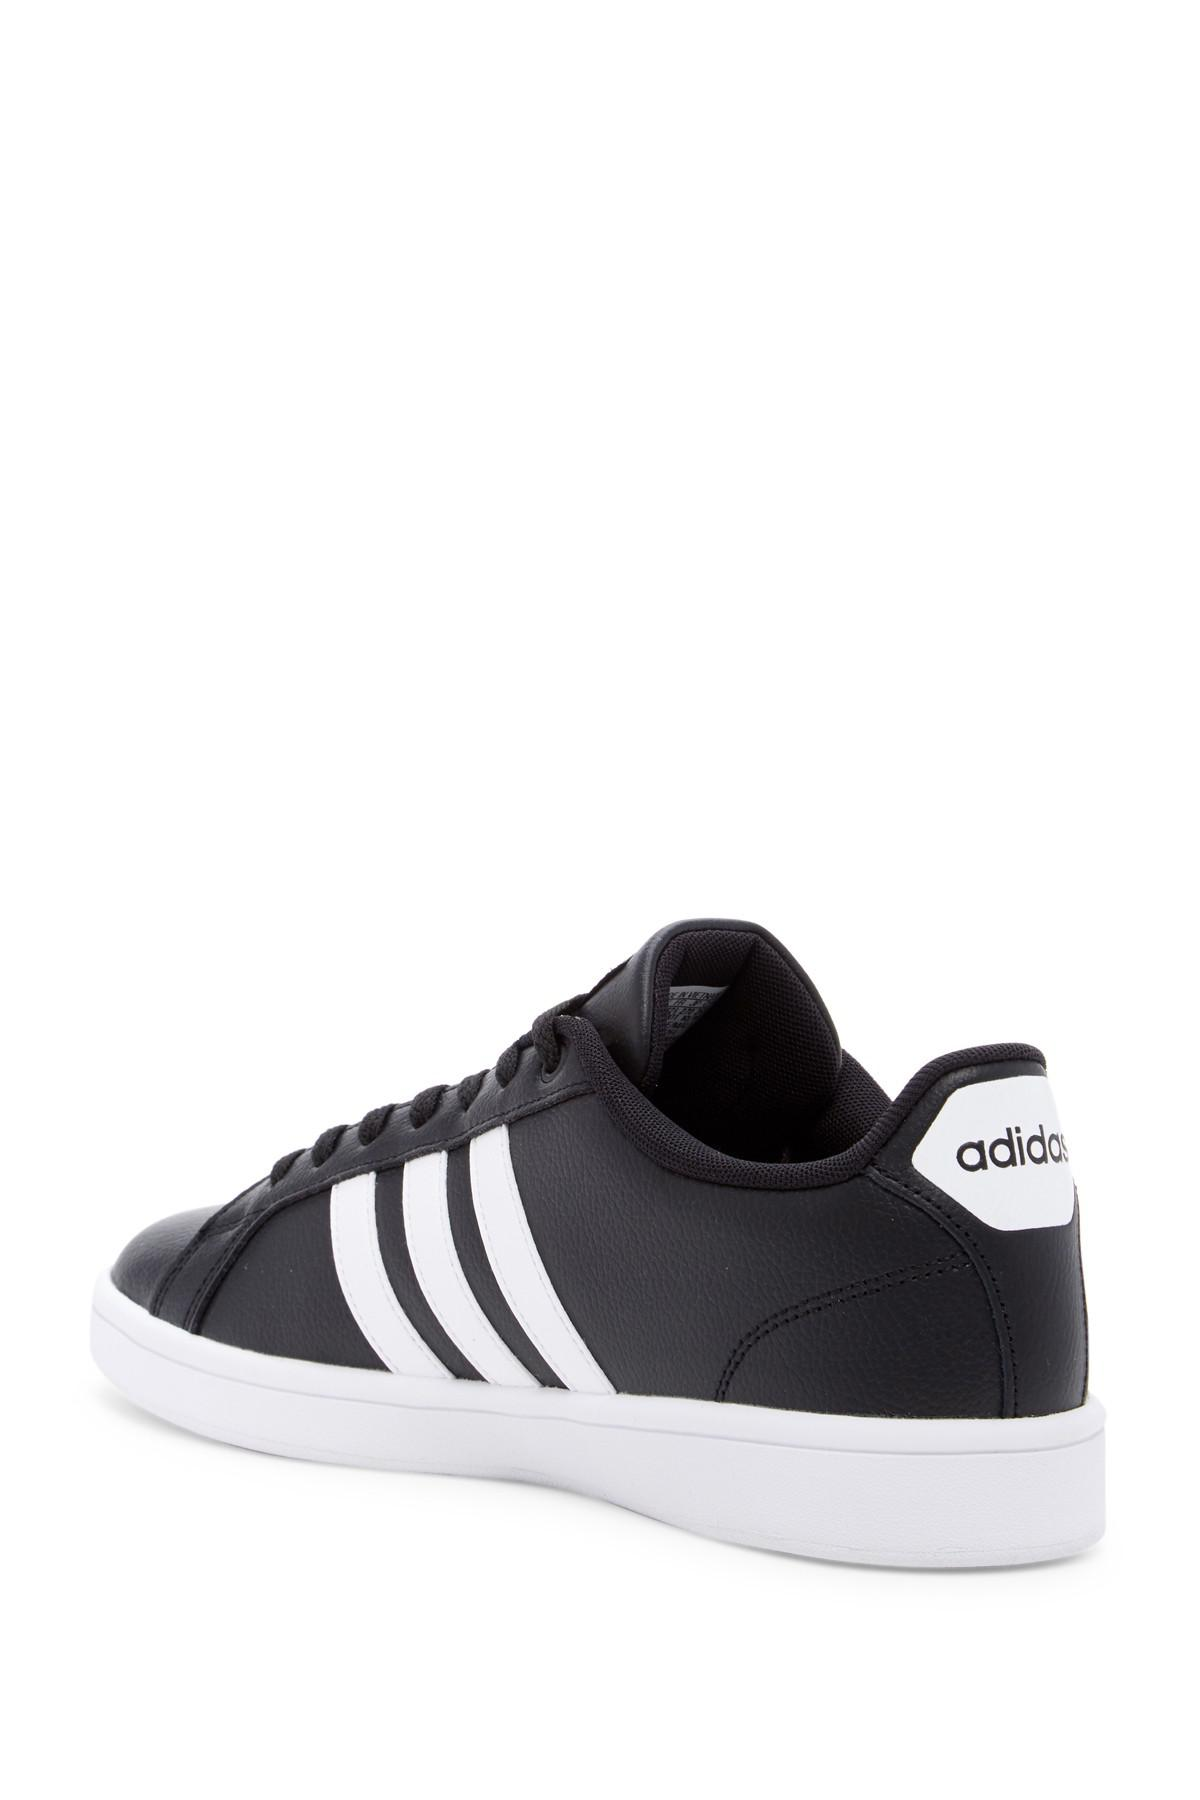 new concept 24fa6 3b170 Adidas - Black Cloudfoam Advantage Leather Sneaker for Men - Lyst. View  fullscreen